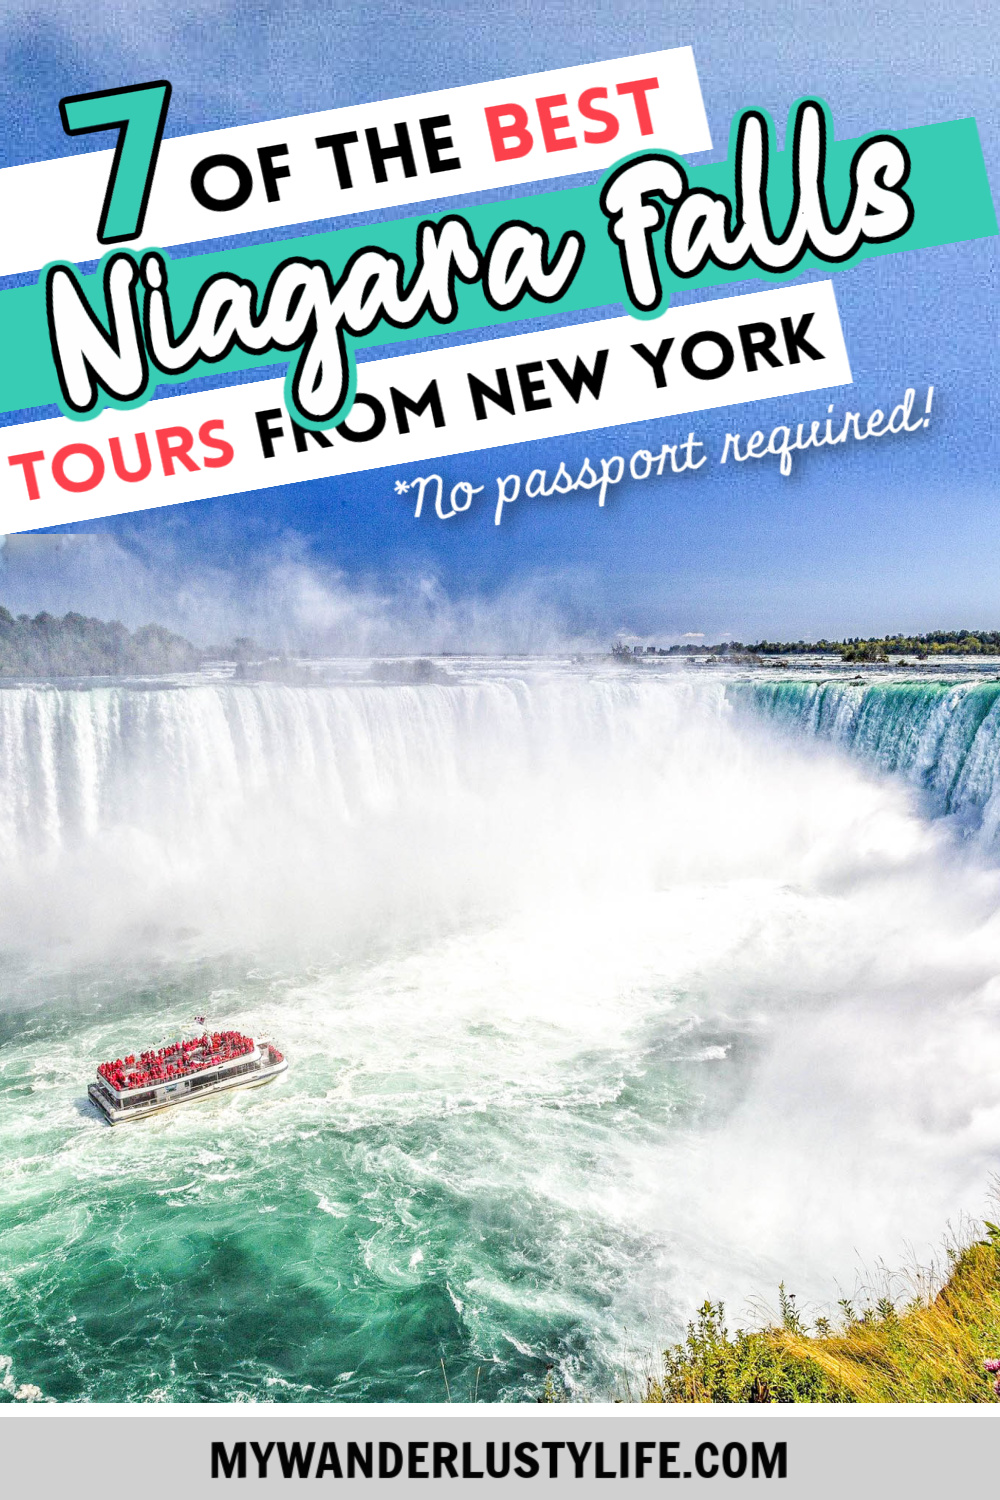 7 of the best niagara falls tours from new york, check out Niagara Falls from the American side, U.S. side. Maid of the Mist tour, jet boat tour, Rainbow Bridge, and more! #mywanderlustylife #niagarafalls #newyork